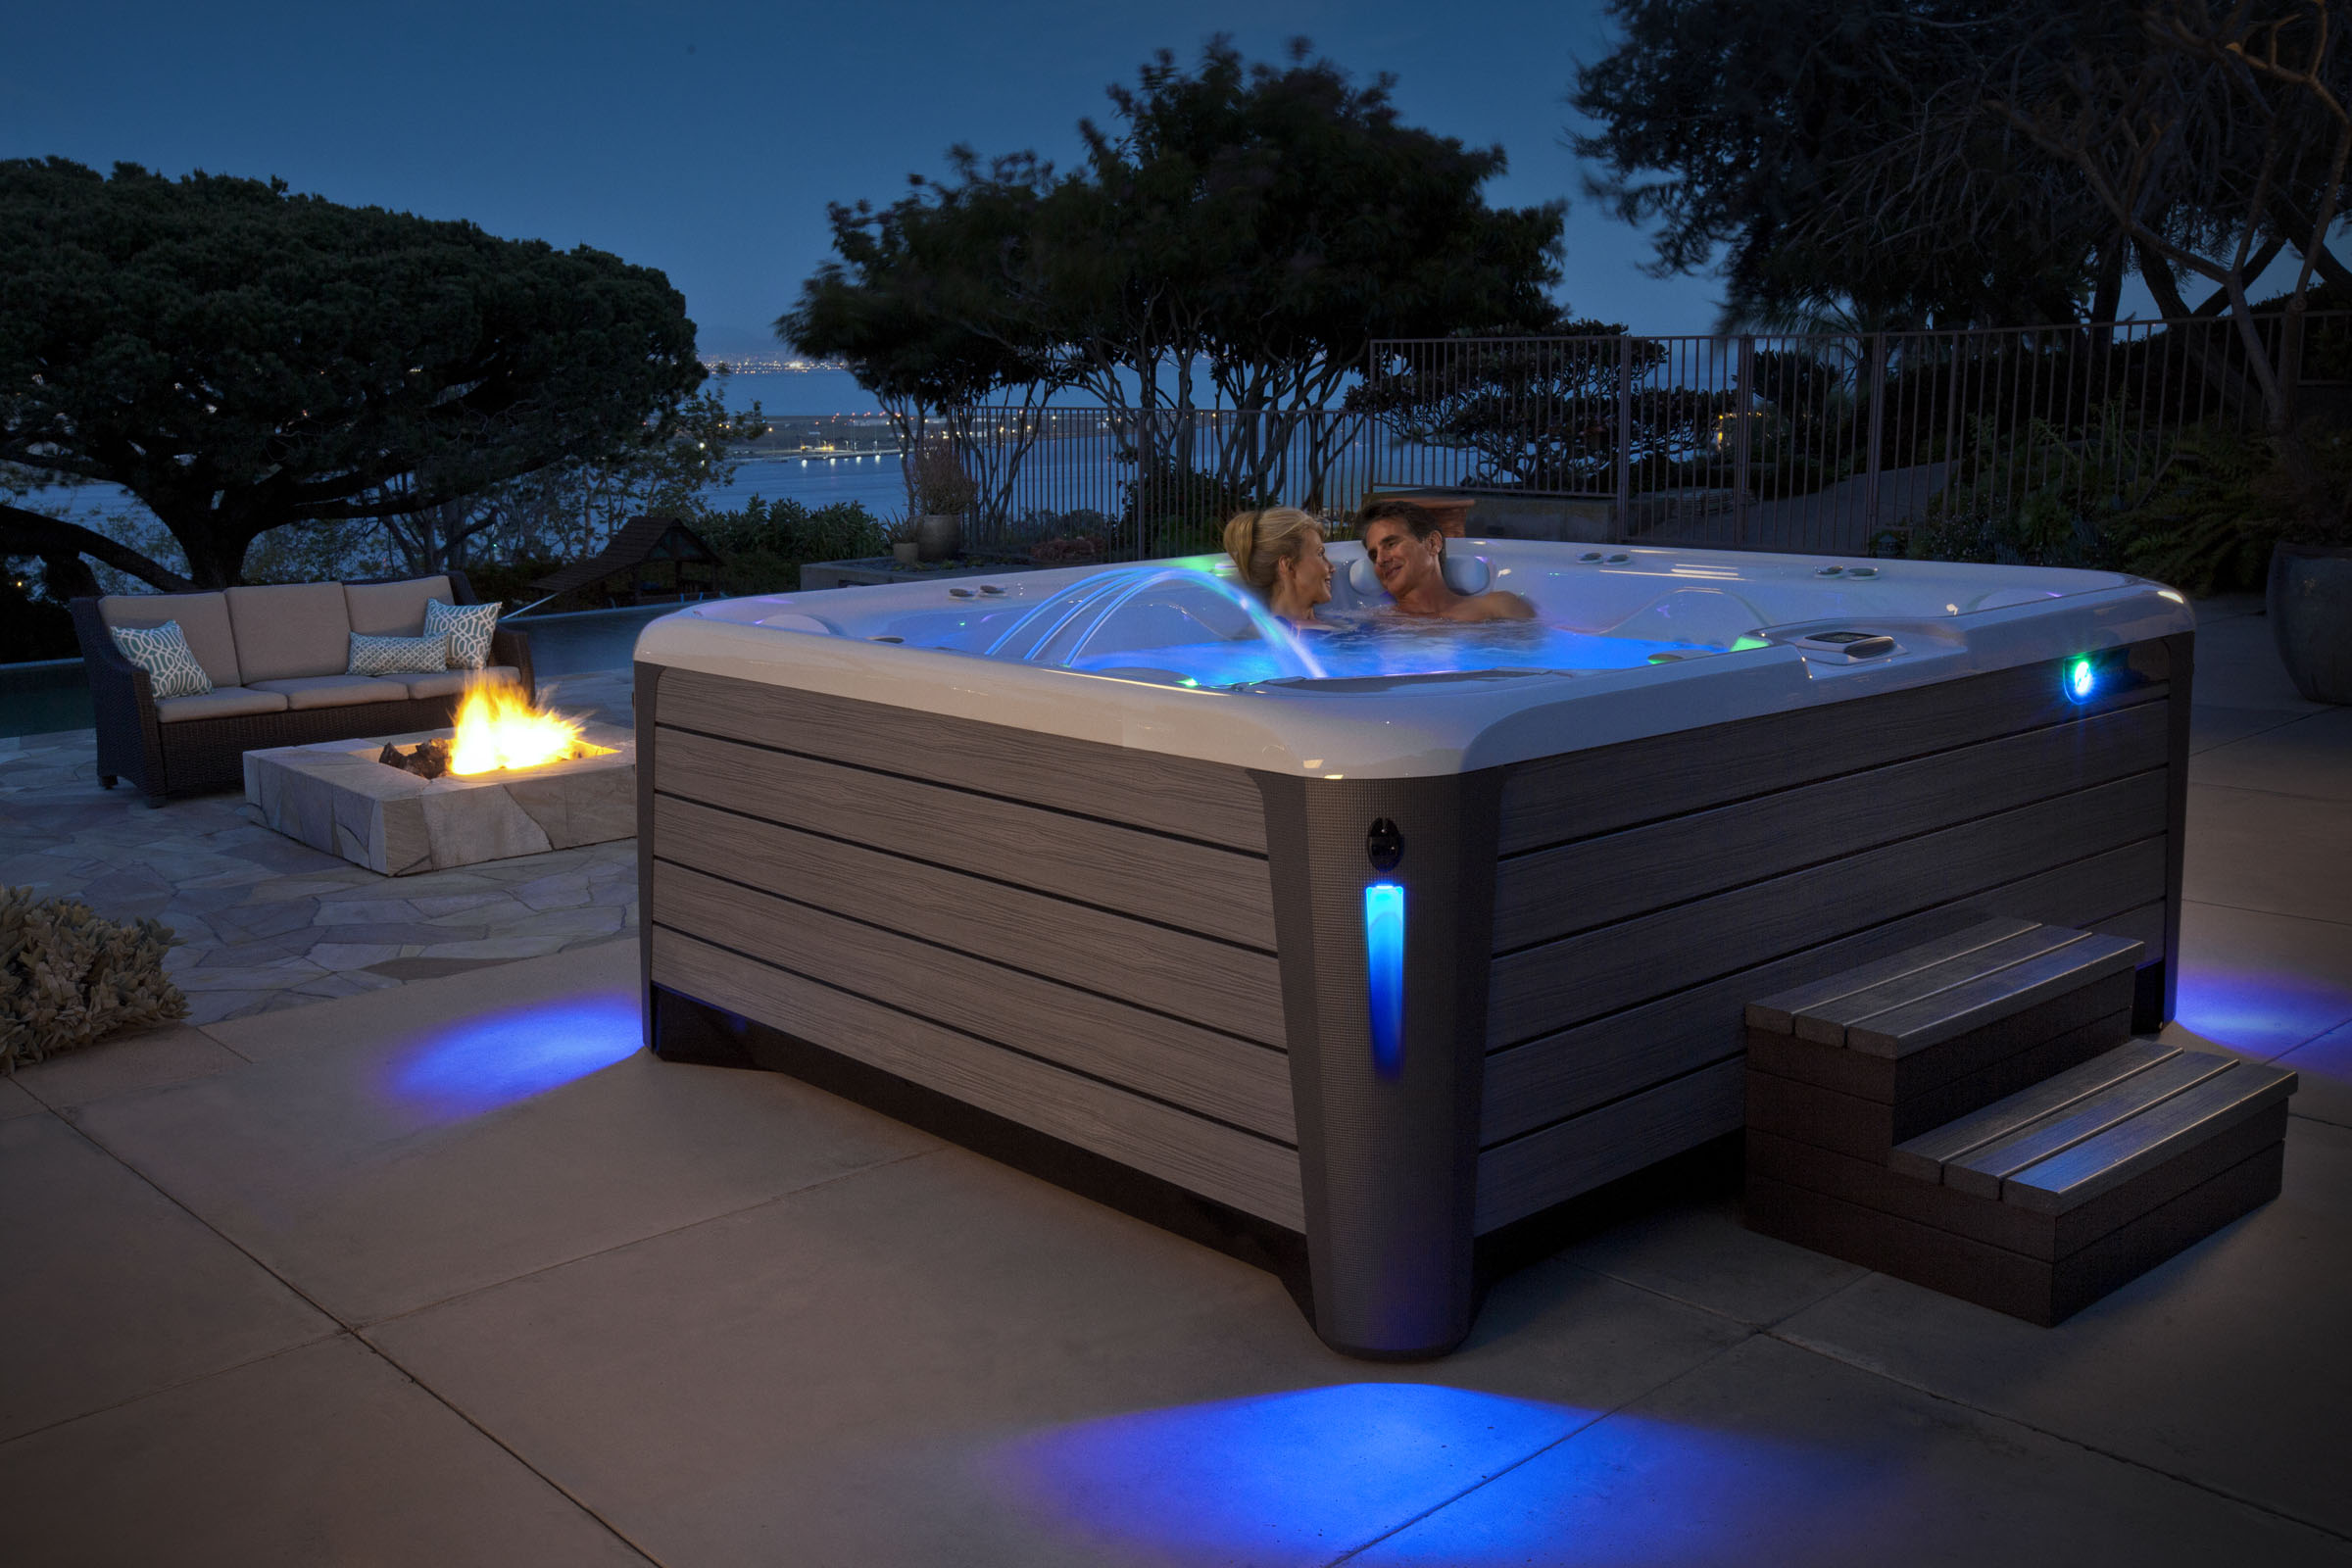 Purchase A Hot Tub & Receive a FREE Big Green Egg